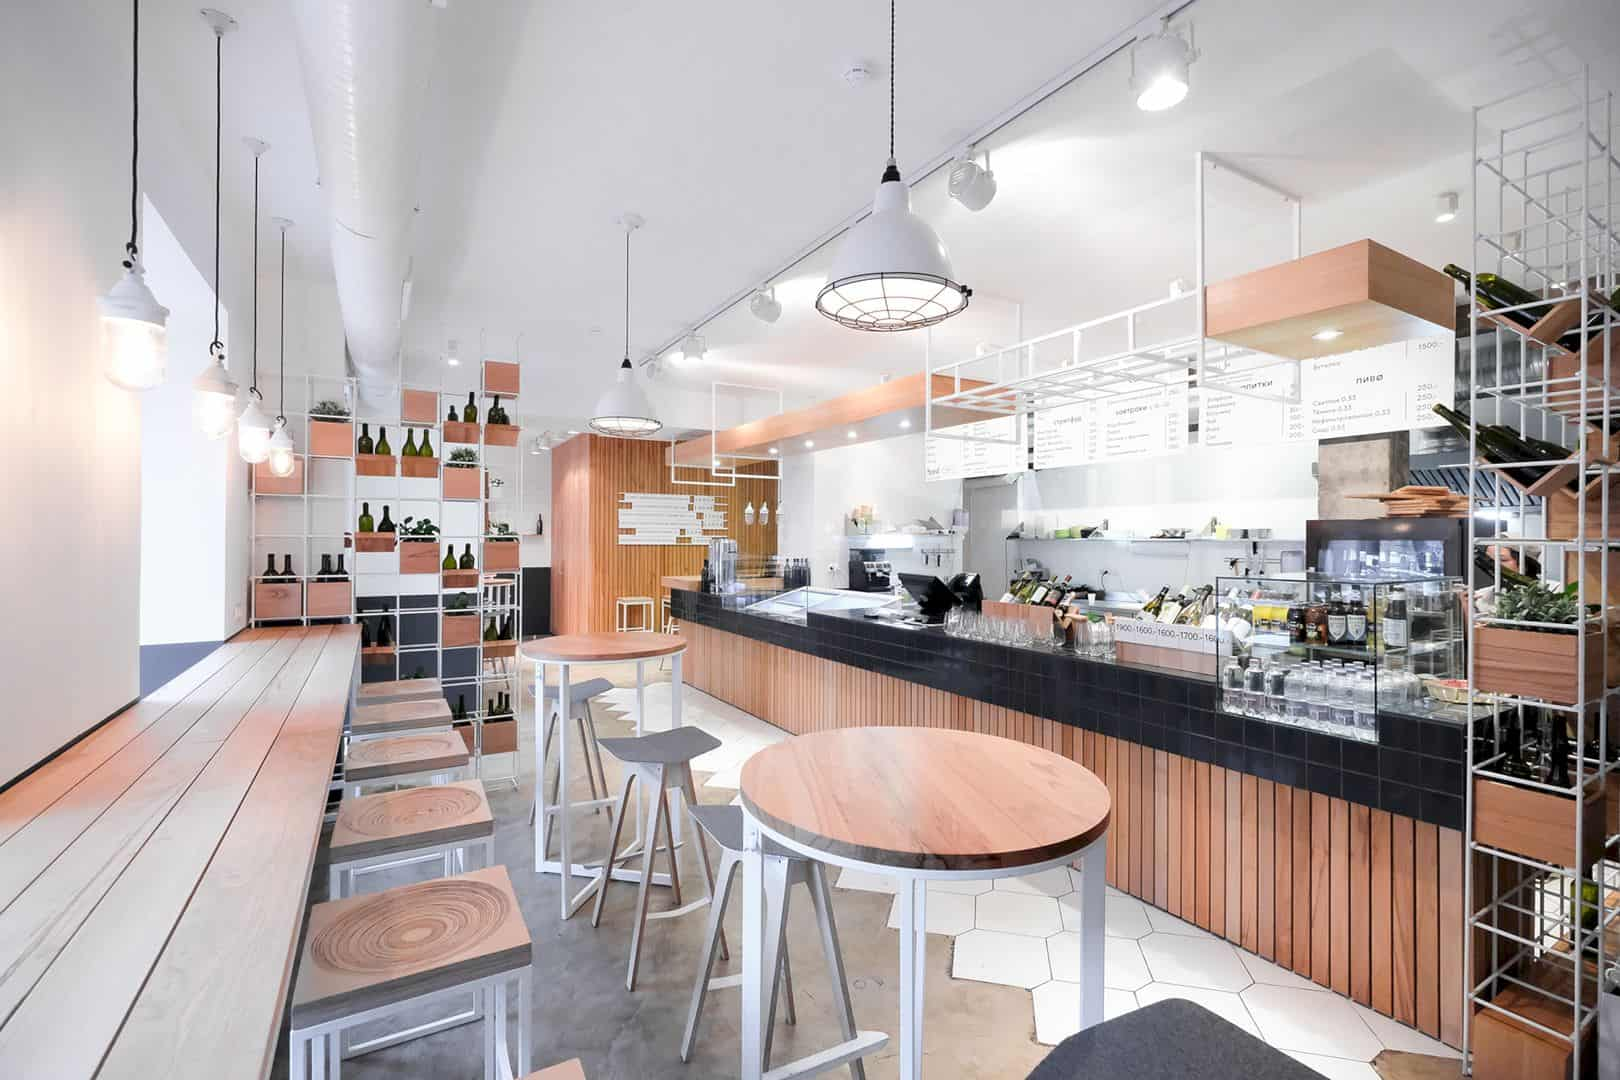 FJORD Seafood Bistro: A Seafood Restaurant with Modern Interior and Beautiful Surface Design